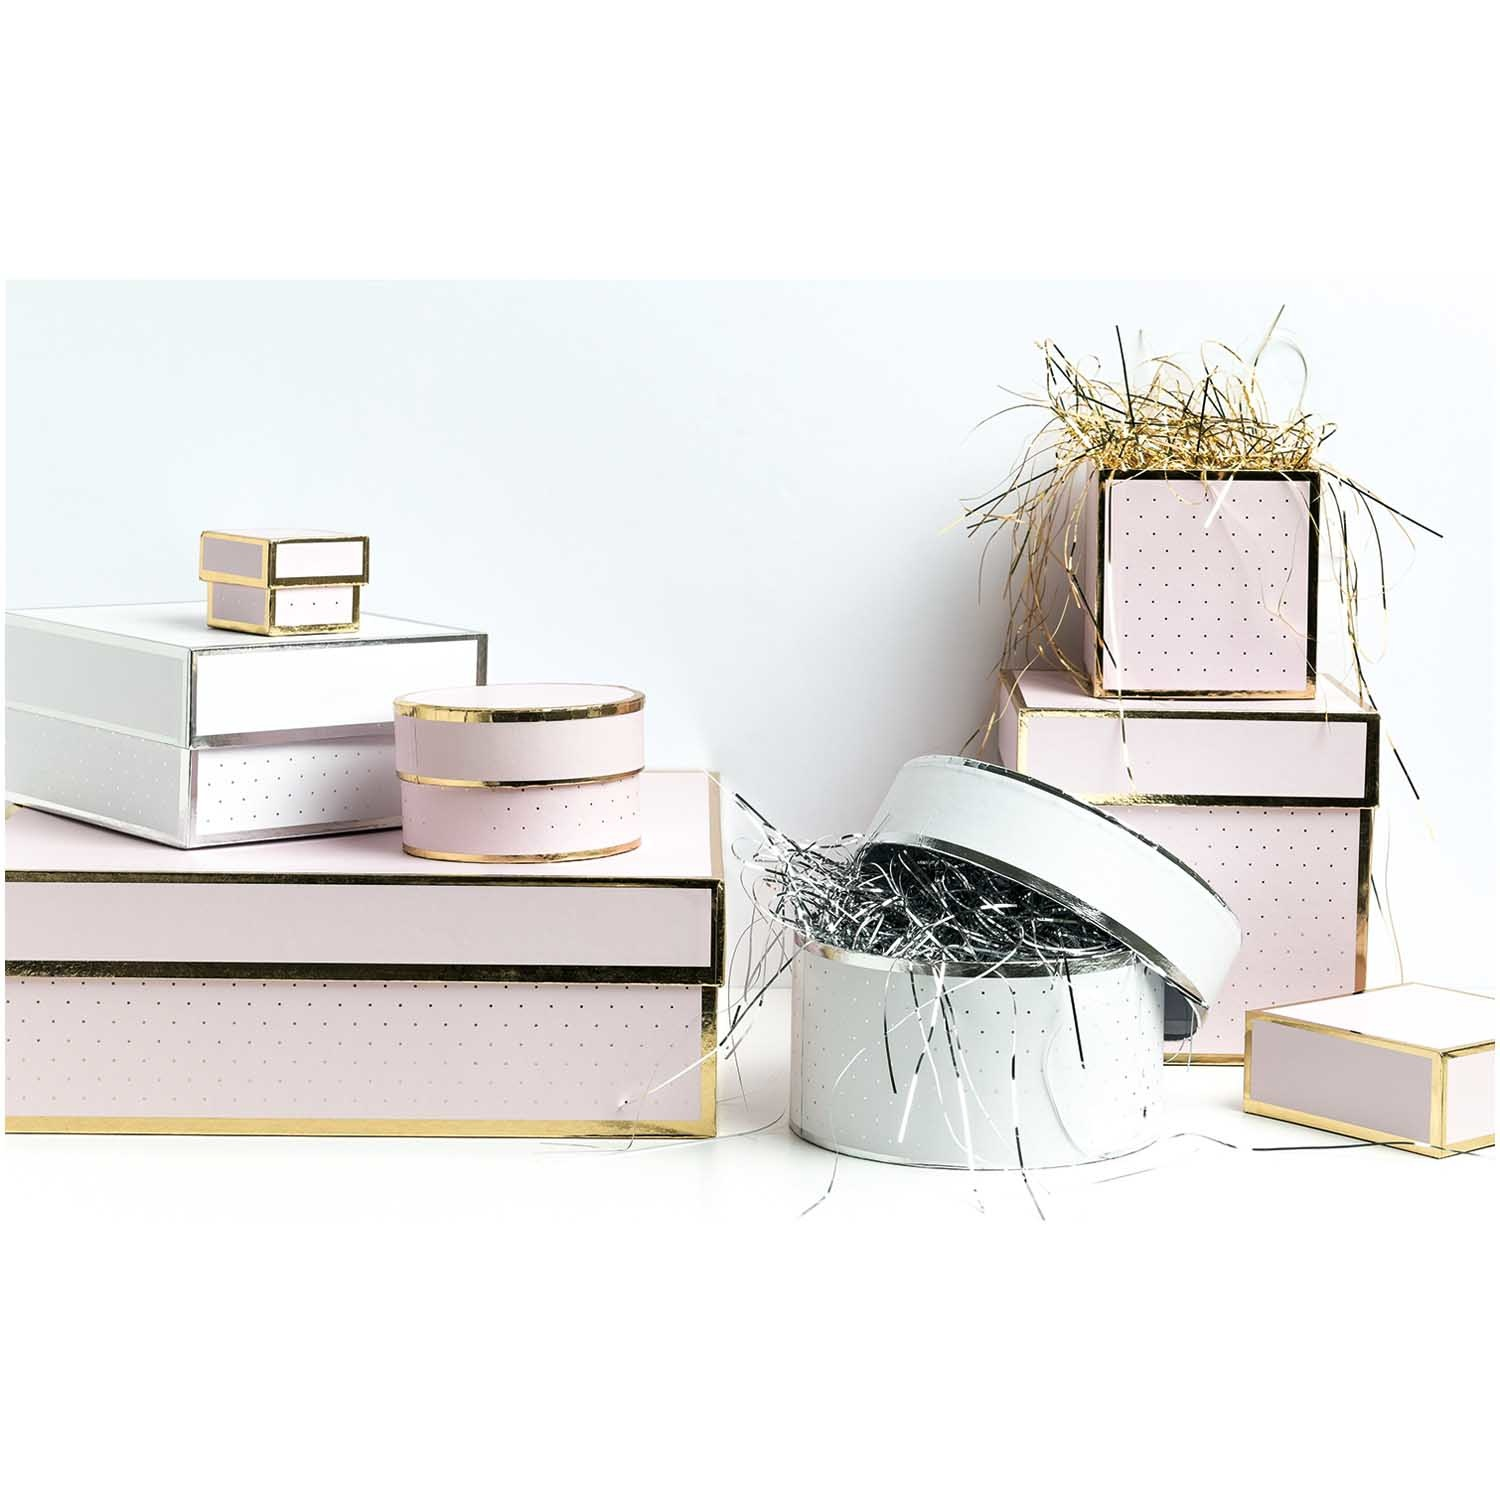 Rico NAY GIFT BOX, PINK, ROUND, FSC RECYCLED 10X6 CM